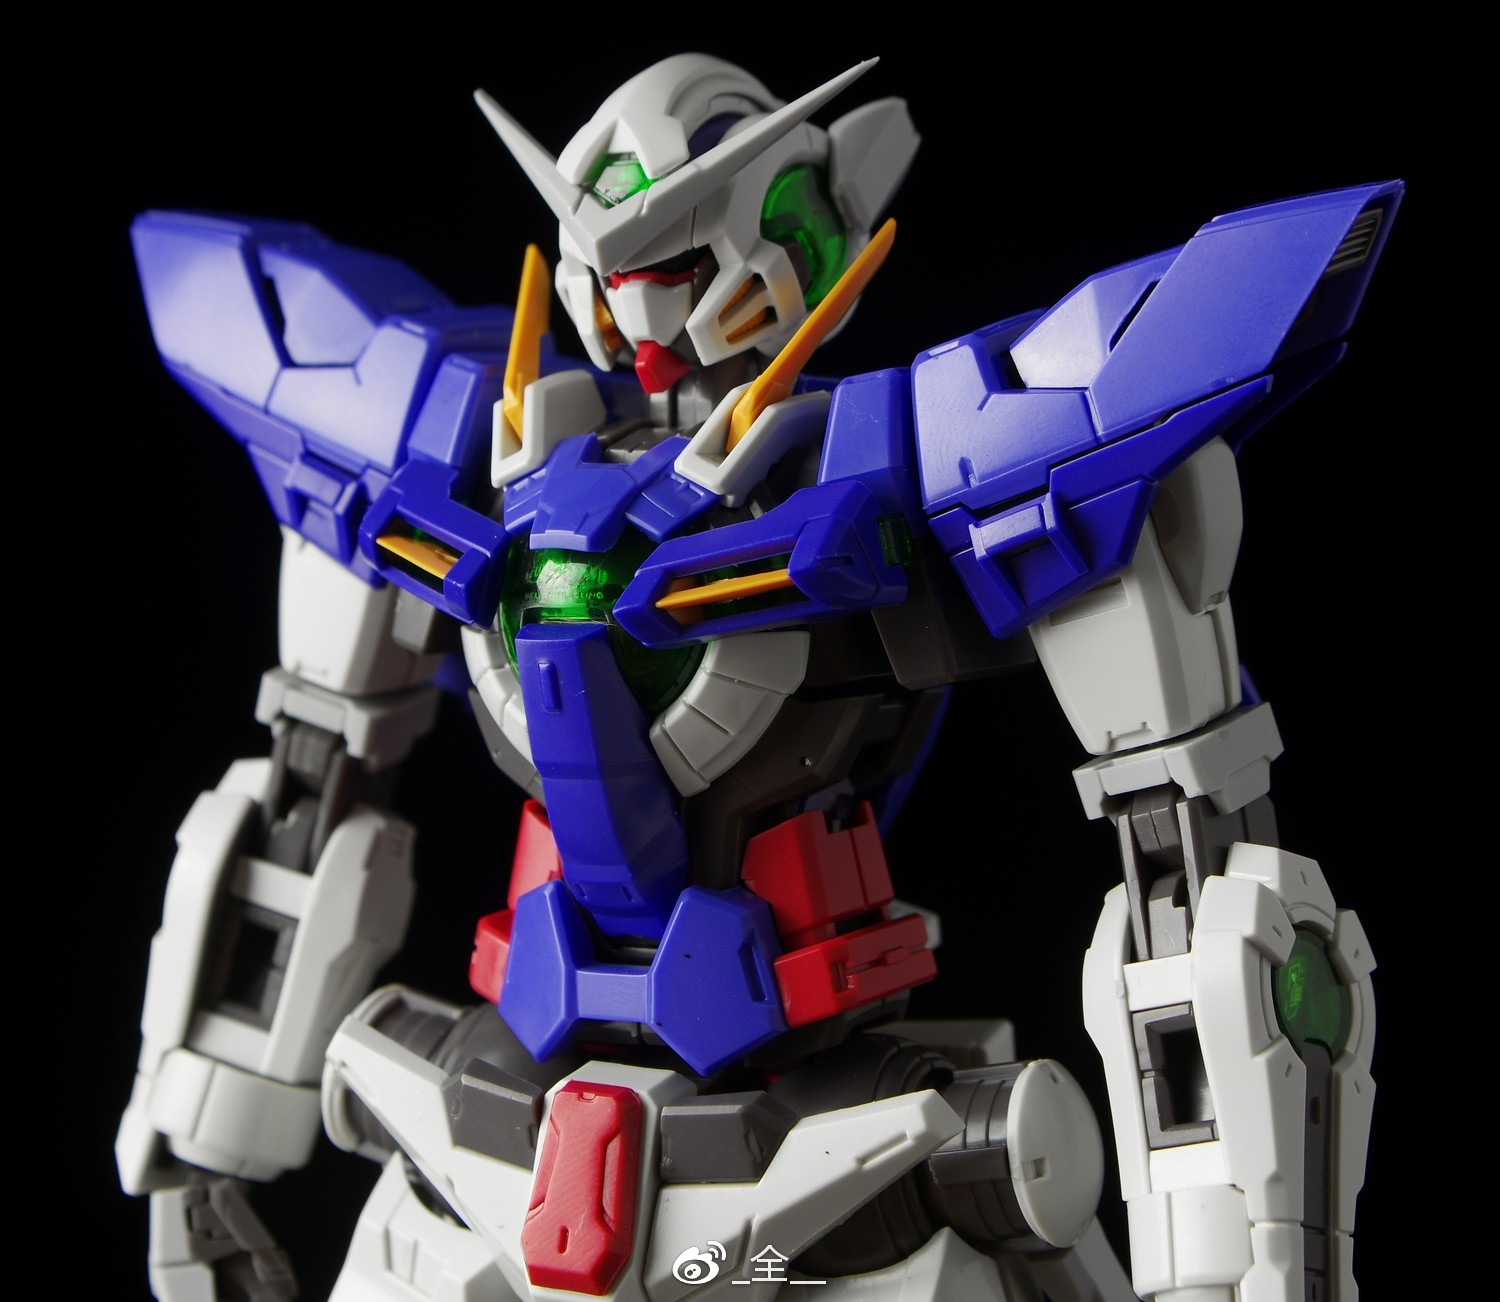 S269_mg_exia_led_hobby_star_inask_087.jpg